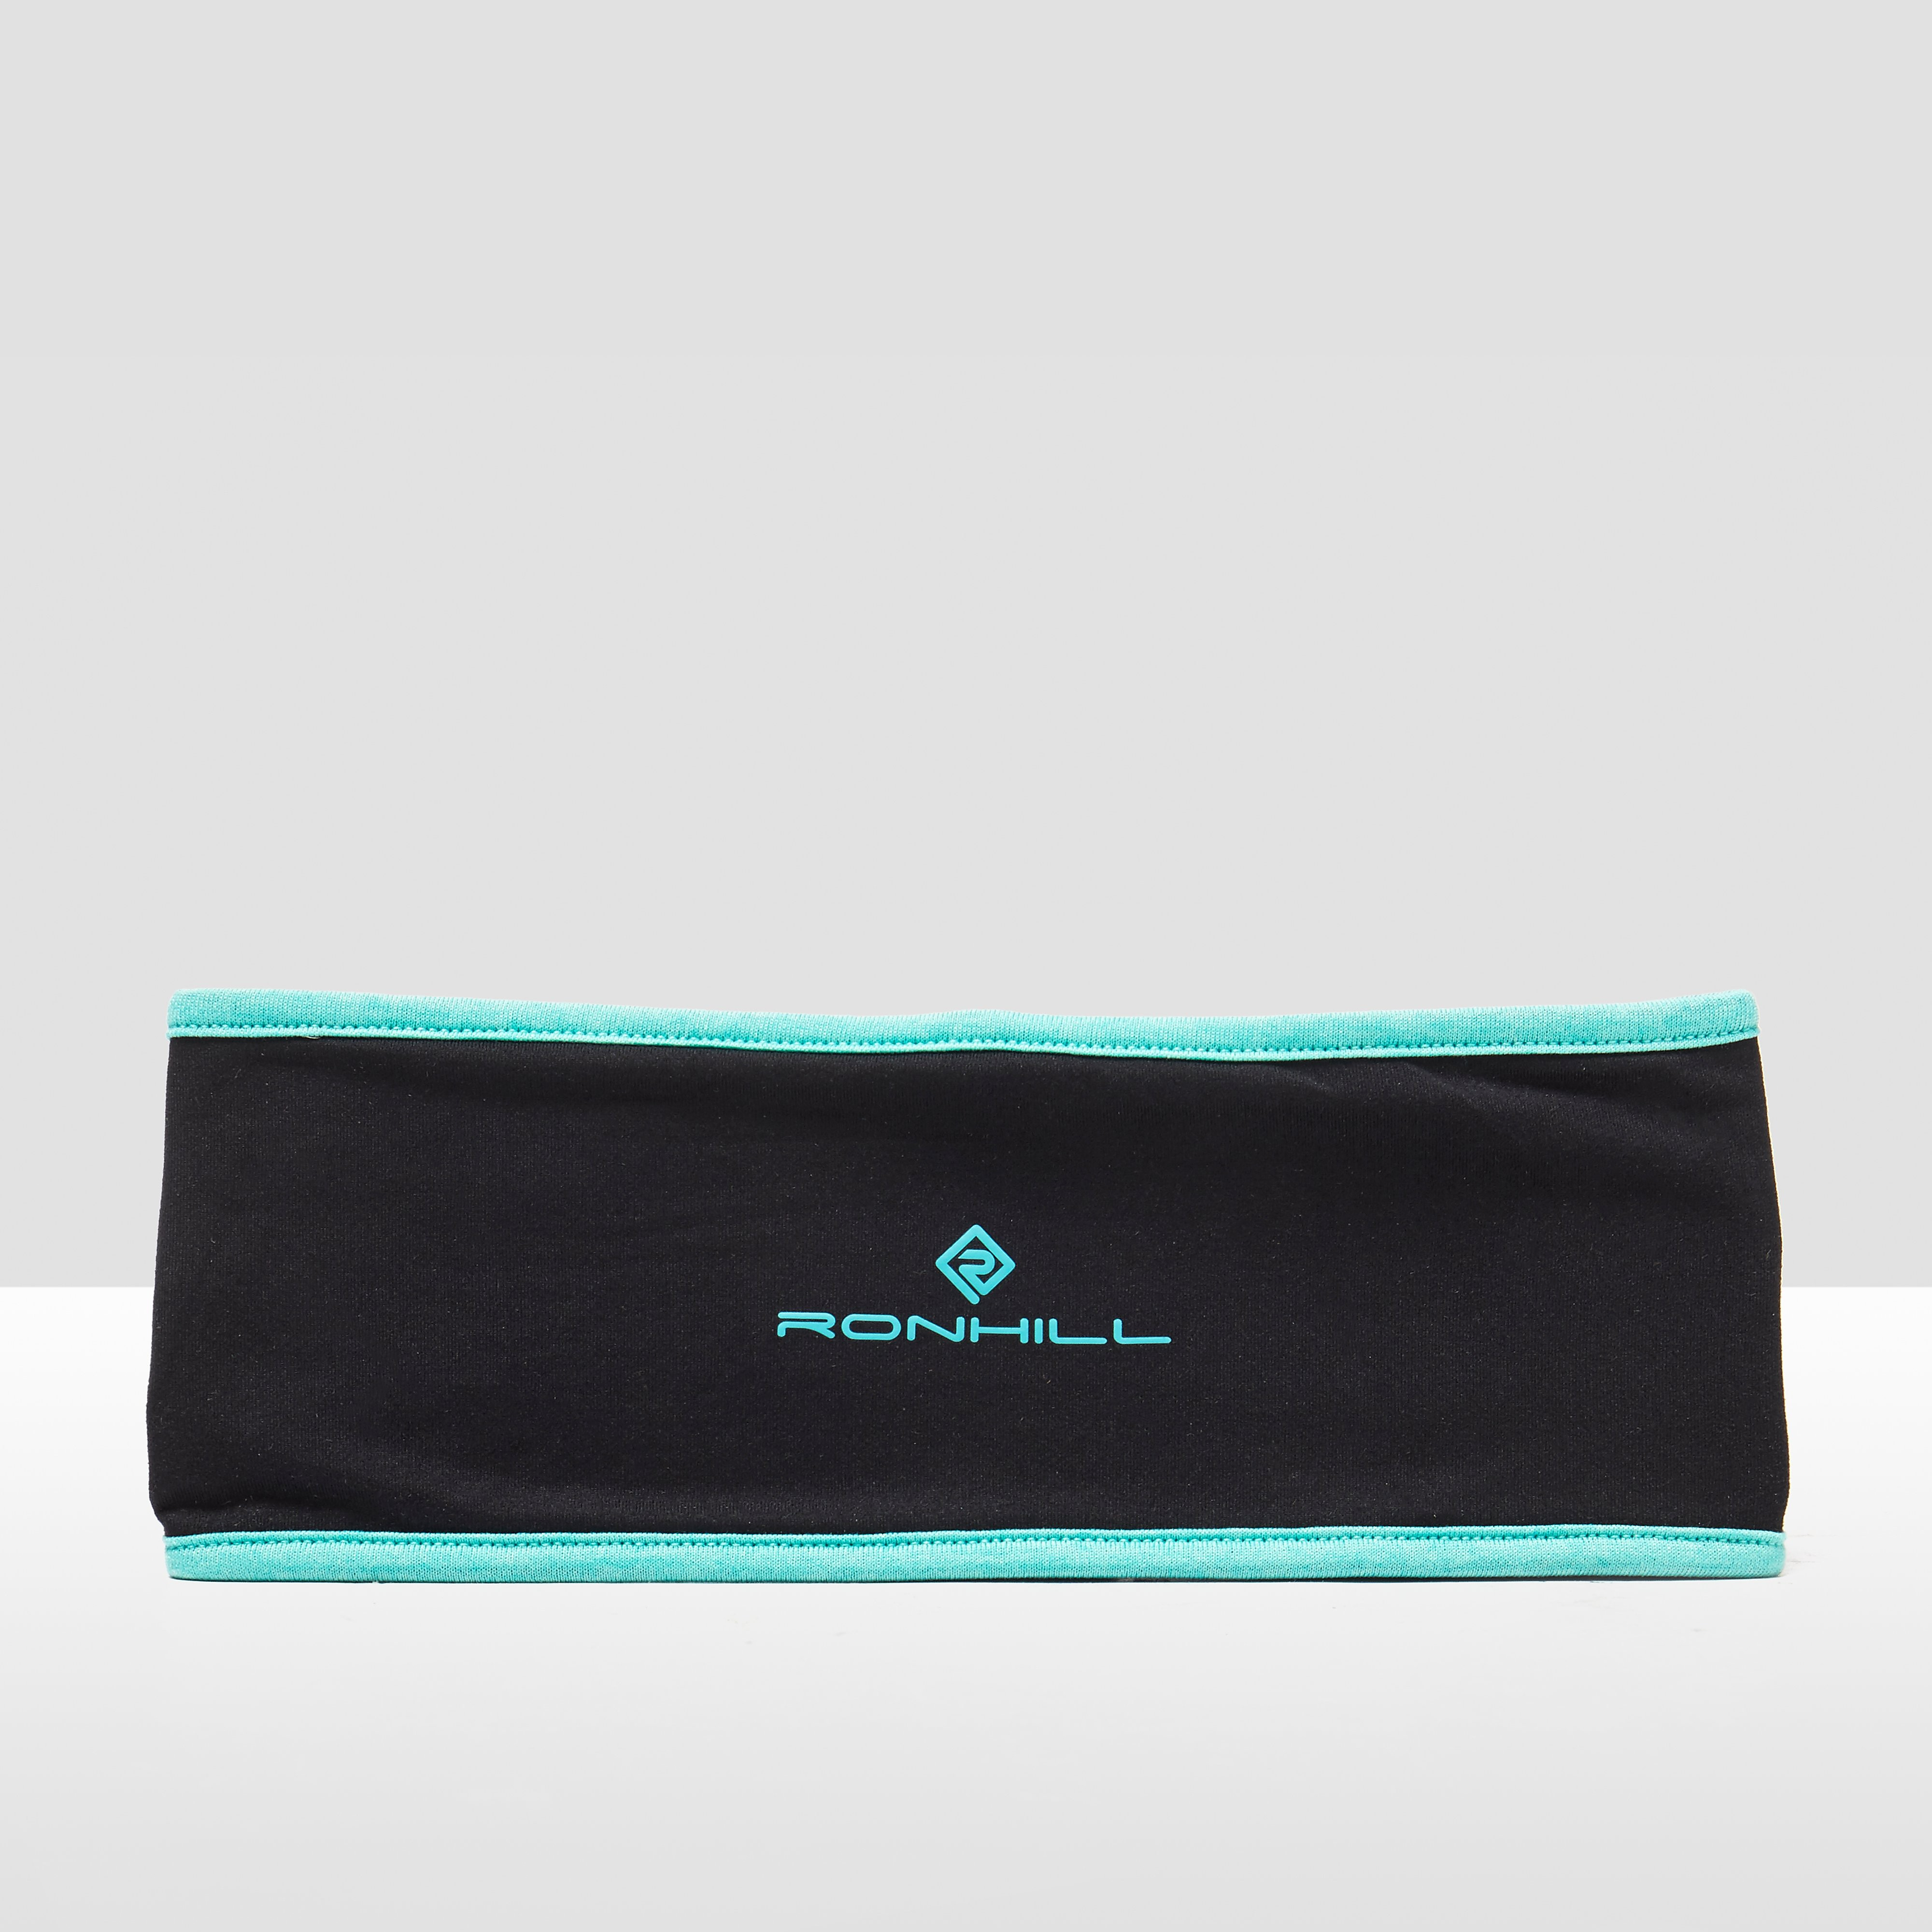 Ronhill Thermal 200 Headband